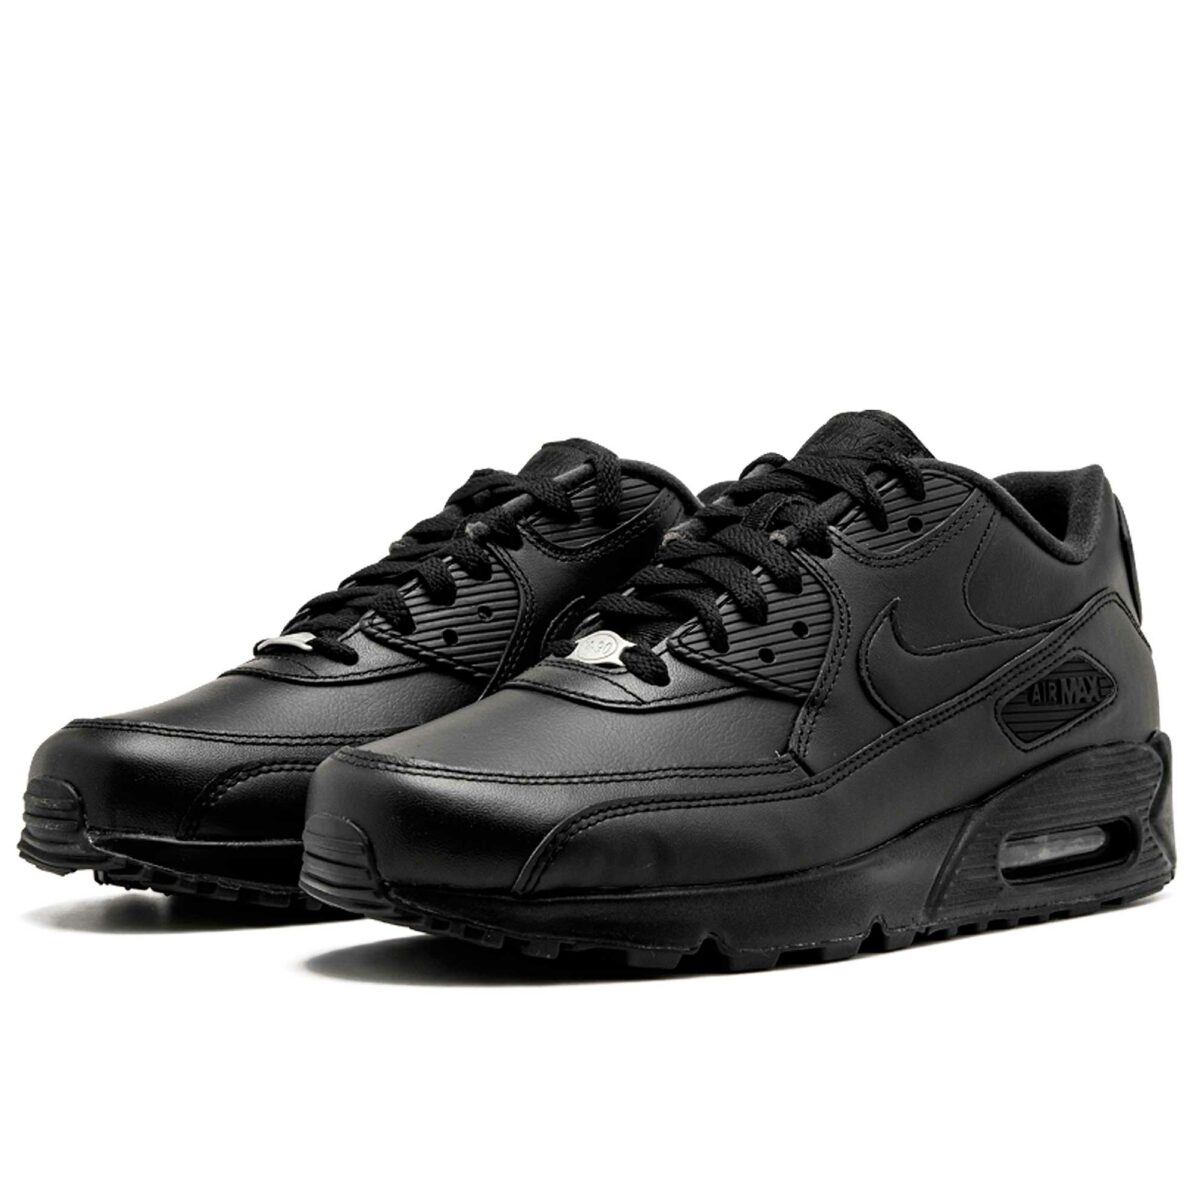 nike air max 90 LTR black 302519-001 купить